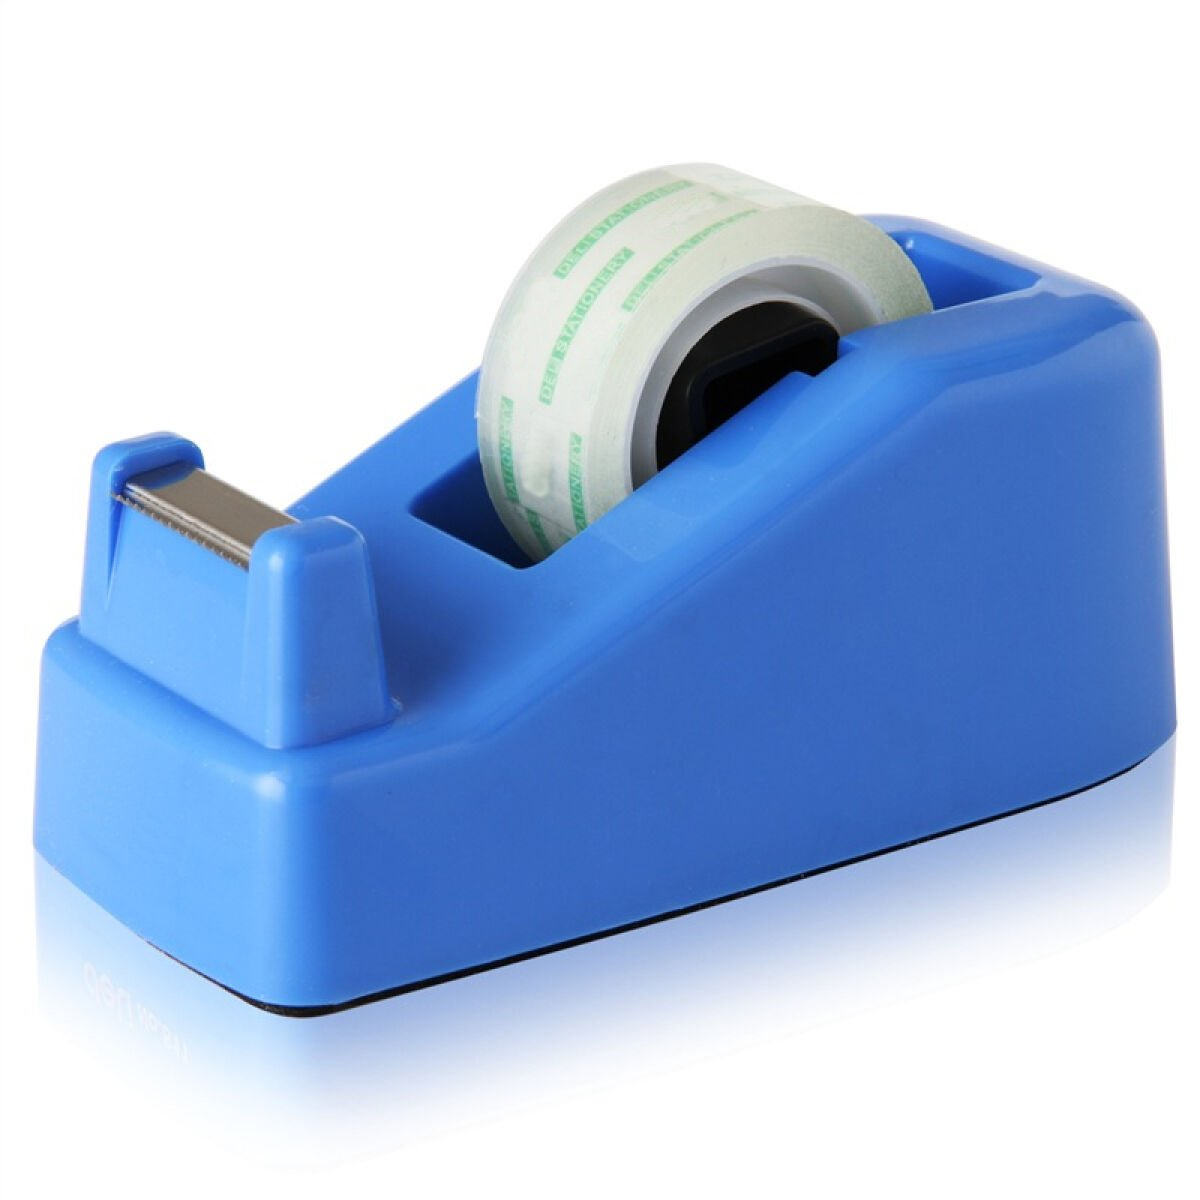 SAYEEC Heavy Duty Tape Dispenser Desk Weighted Non-slip Capacity 18mm Width - With 1 Roll of Tape Supplied - Small/Blue Saye E-commerce